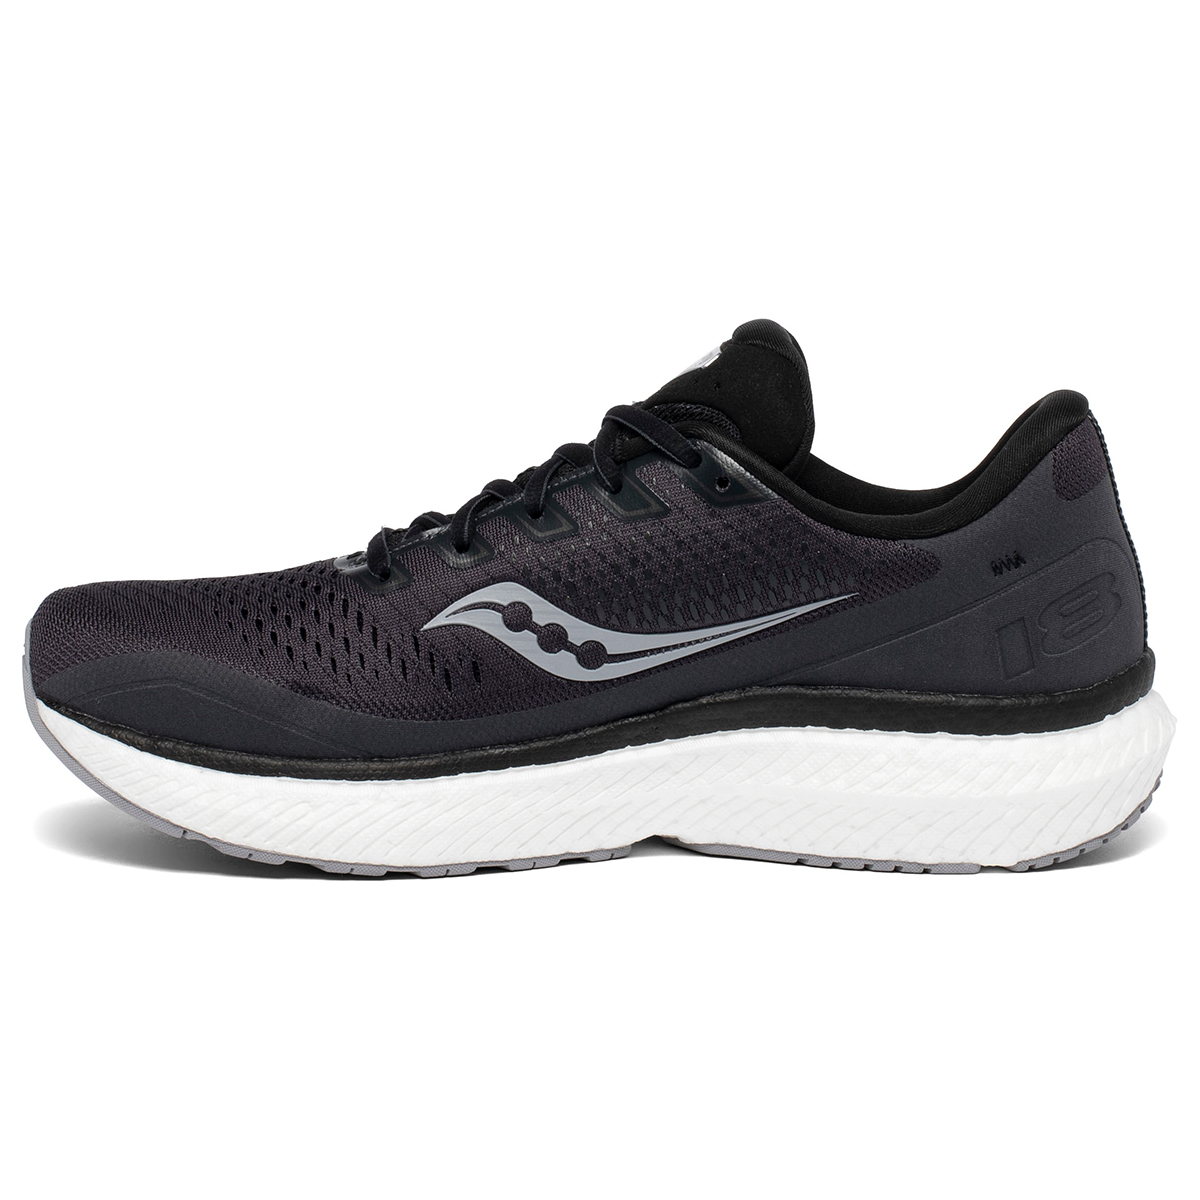 Men's Saucony Triumph 18 Running Shoe - Color: Charcoal/White - Size: 7 - Width: Regular, Charcoal/White, large, image 5